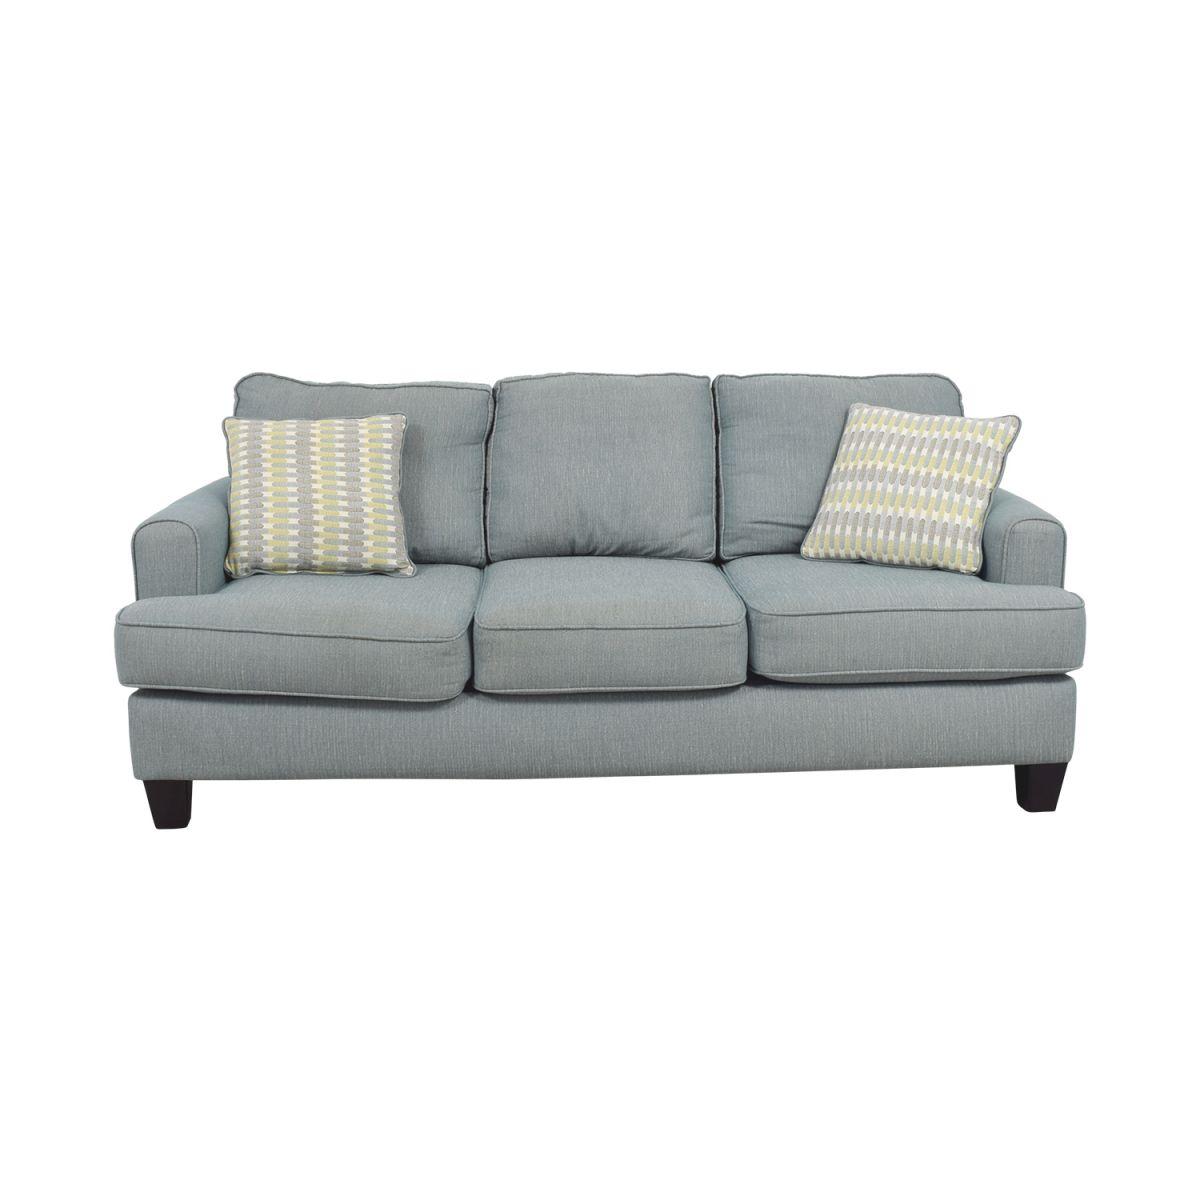 Picture of: Raymour Flanigan Sofa Socpar With Regard To Raymour And Flanigan Sleeper Sofa Awesome Decors